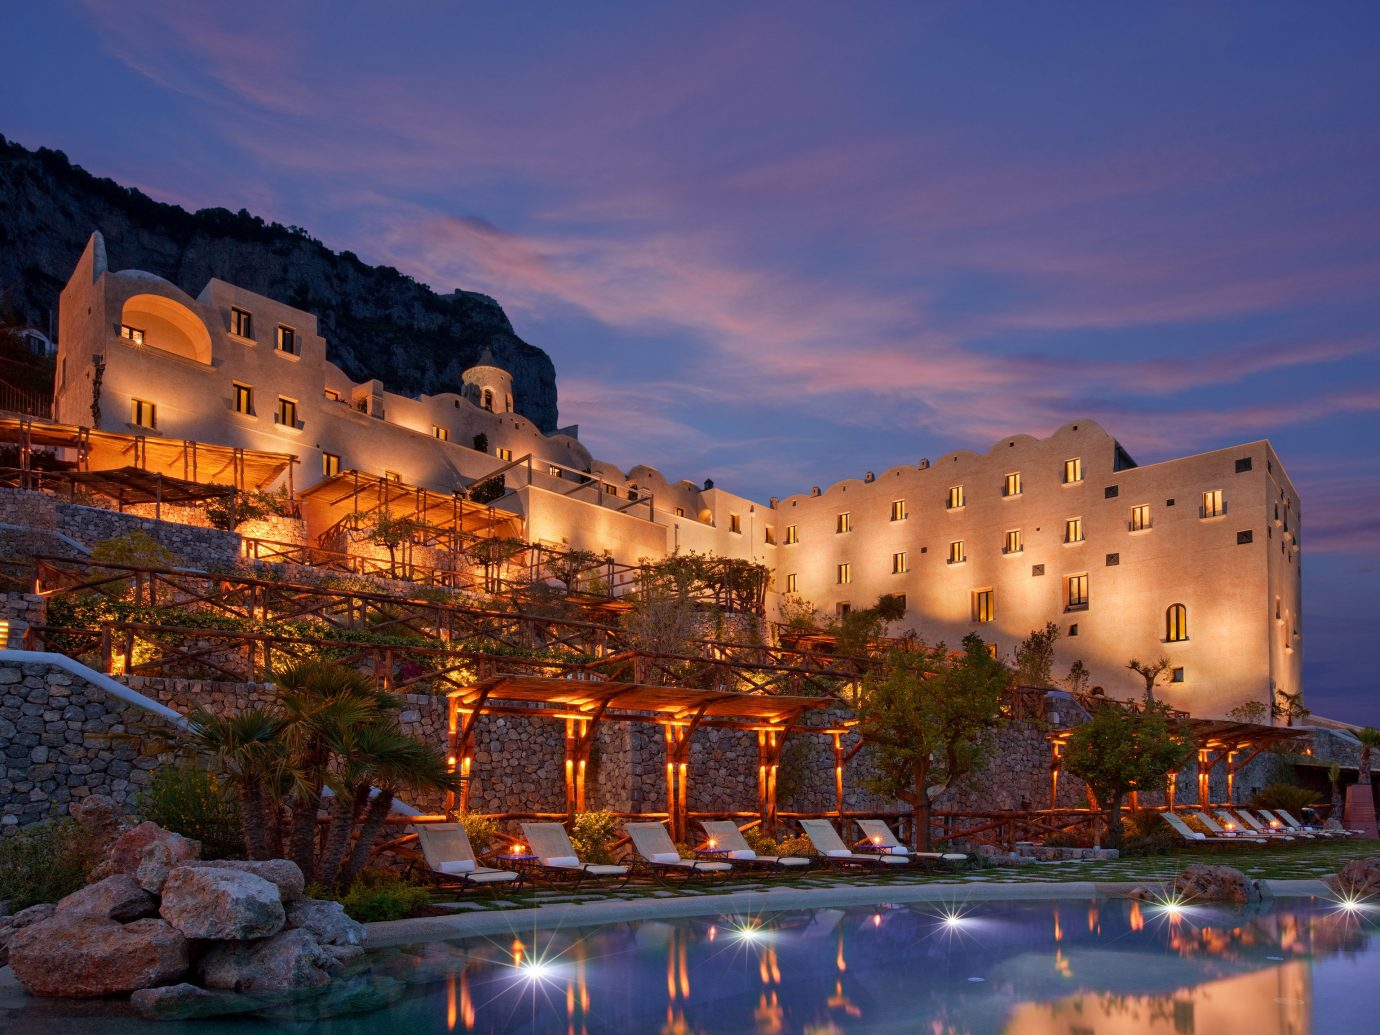 Exterior of Monastero Santa Rosa, Conca dei Marini at night